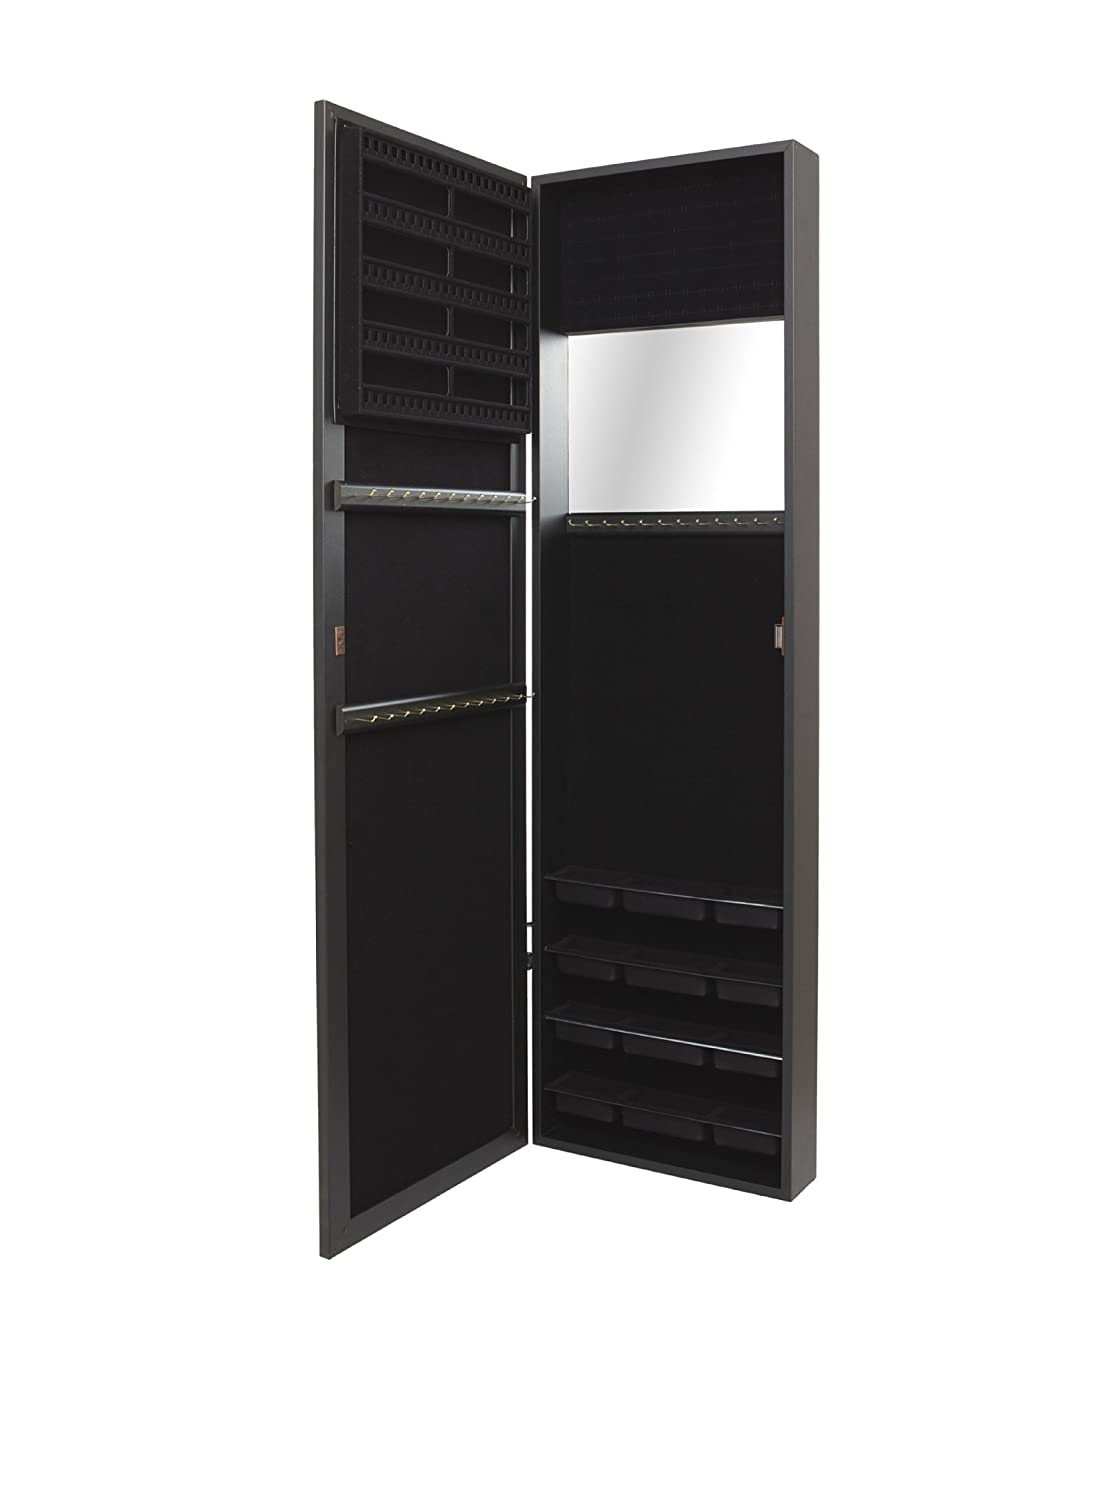 Amazon.com: Plaza Astoria Wall/Door Mount Jewelry Armoire, Black: Home U0026  Kitchen